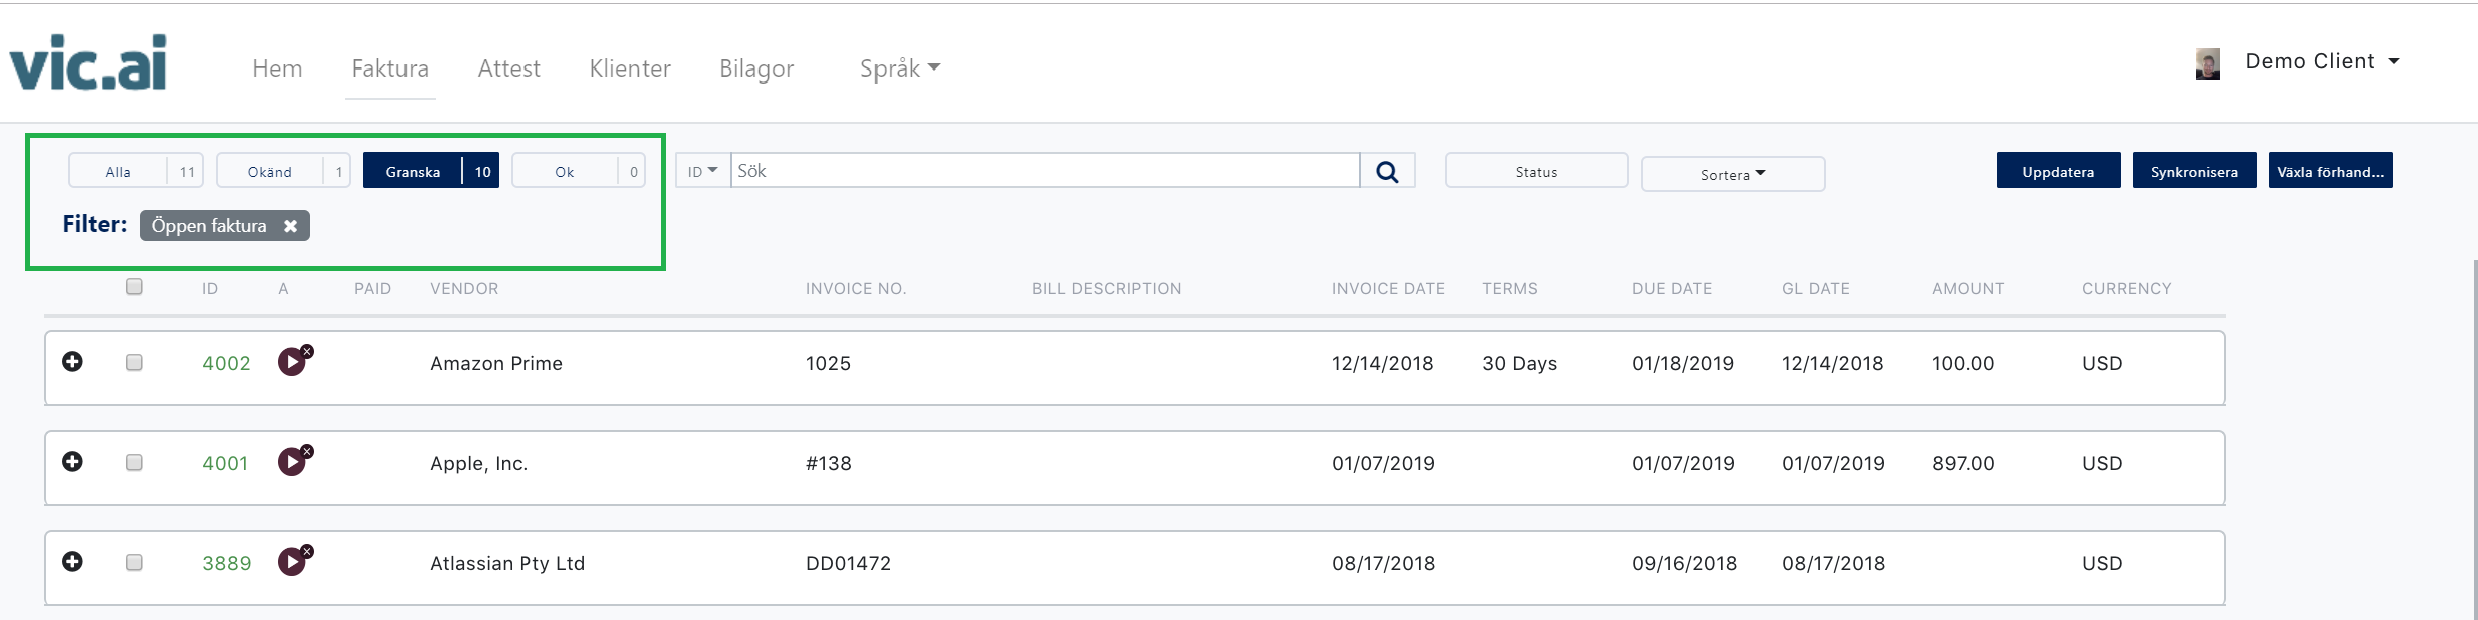 Vic_ai_Dashboard_Invoice_Overview_1.png